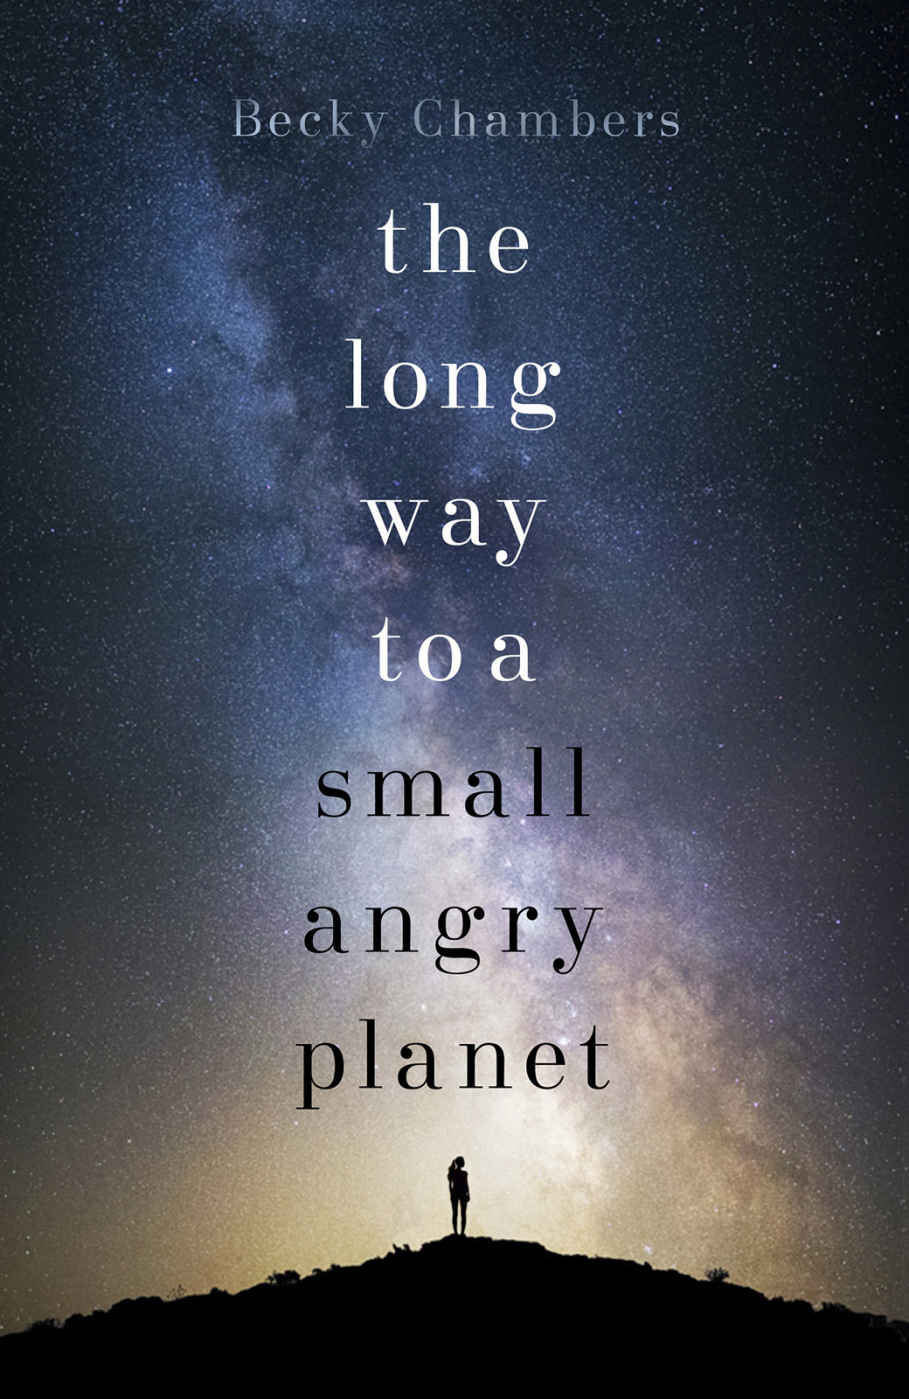 The long way to a small angry planet cover